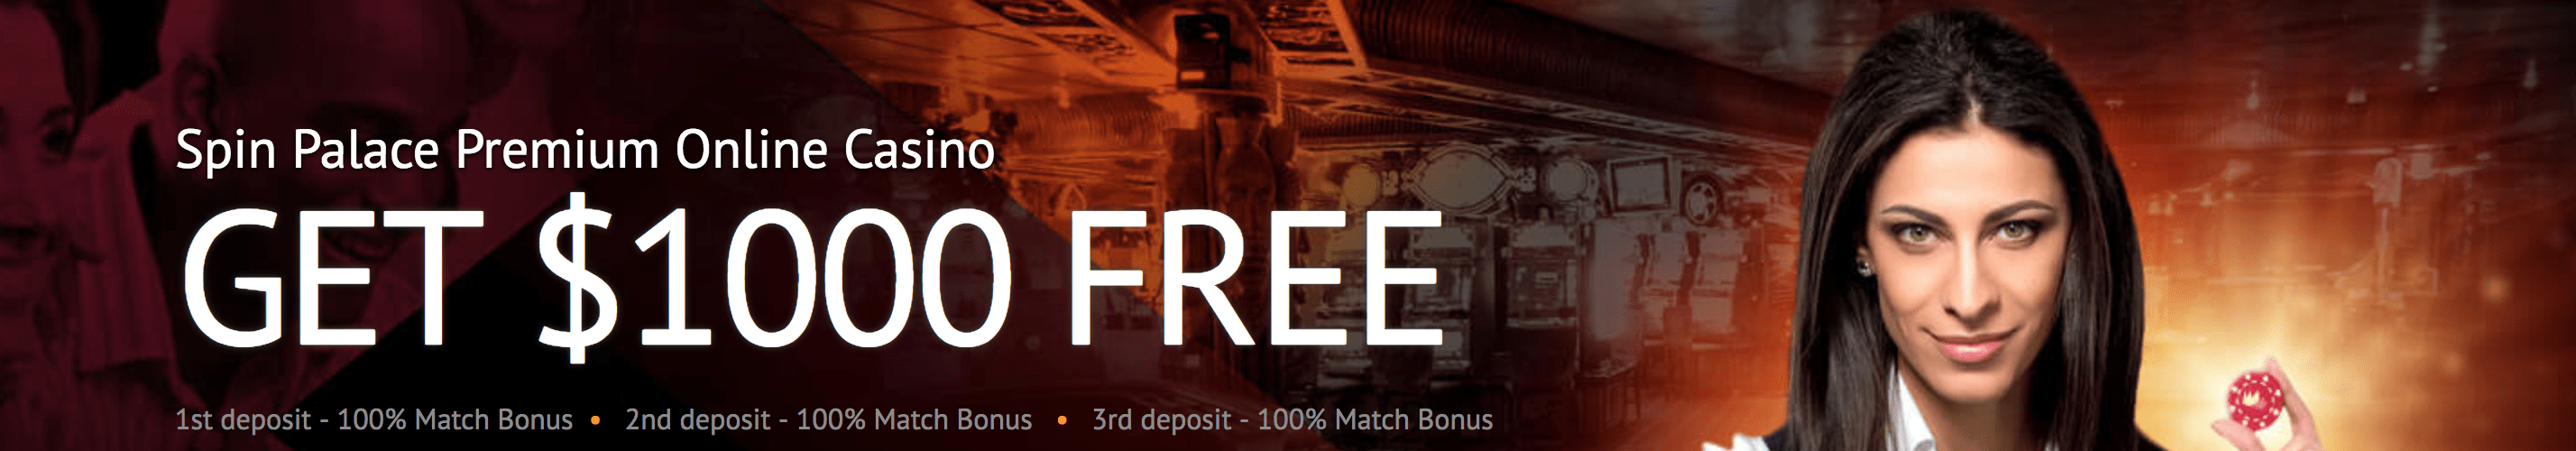 Spin Casino tiered deposit bonus, up to $1000 for new players.